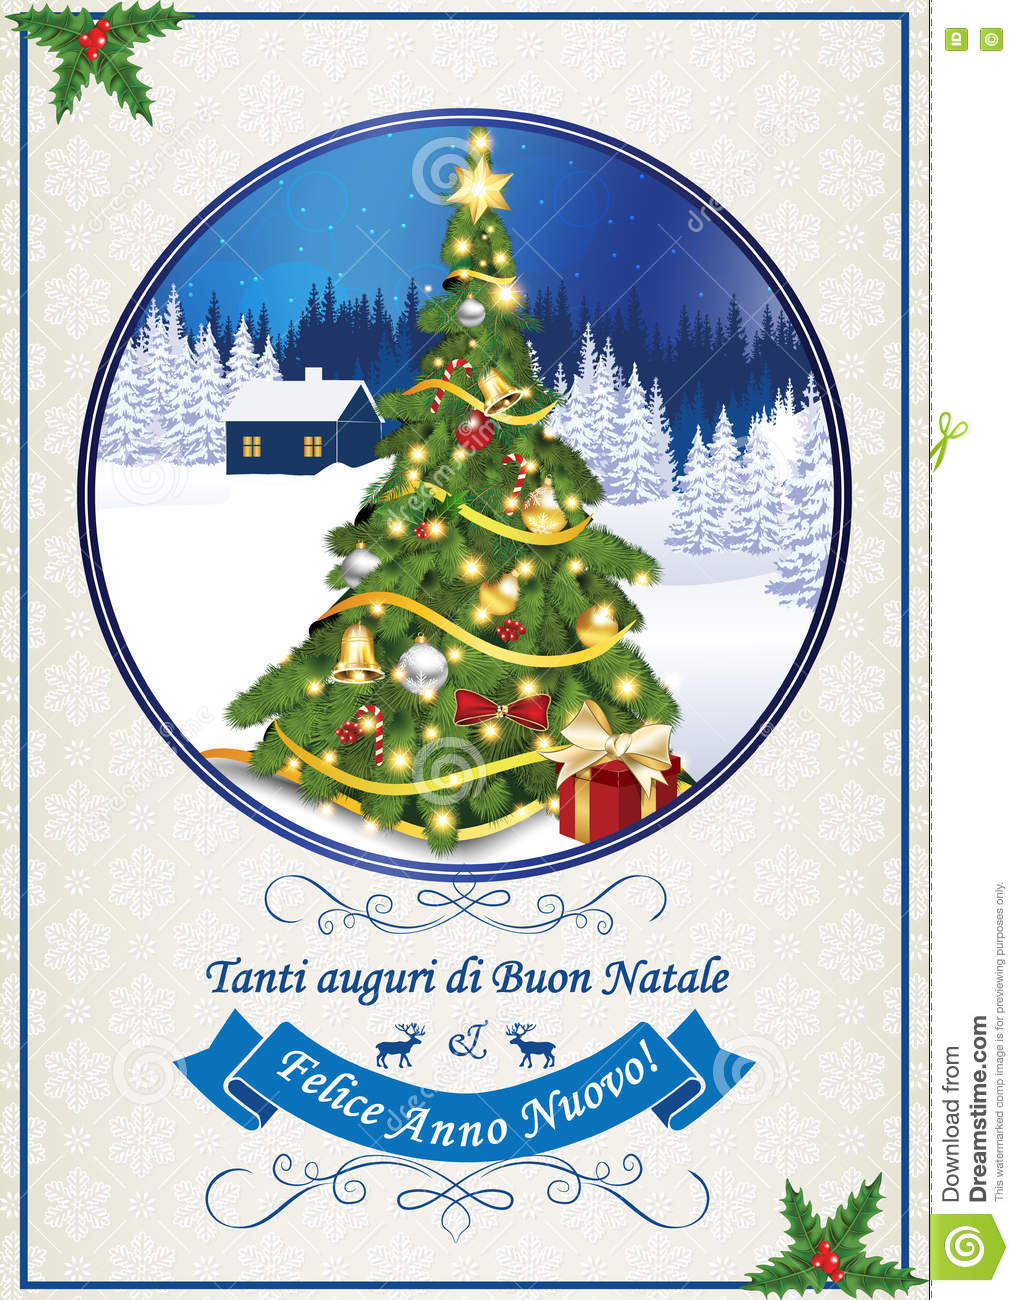 italian seasons greetings for winter holiday merry christmas and happy new year tanti auguri di buon natale felice anno nuovo print colors used - Merry Christmas And Happy New Year In Italian